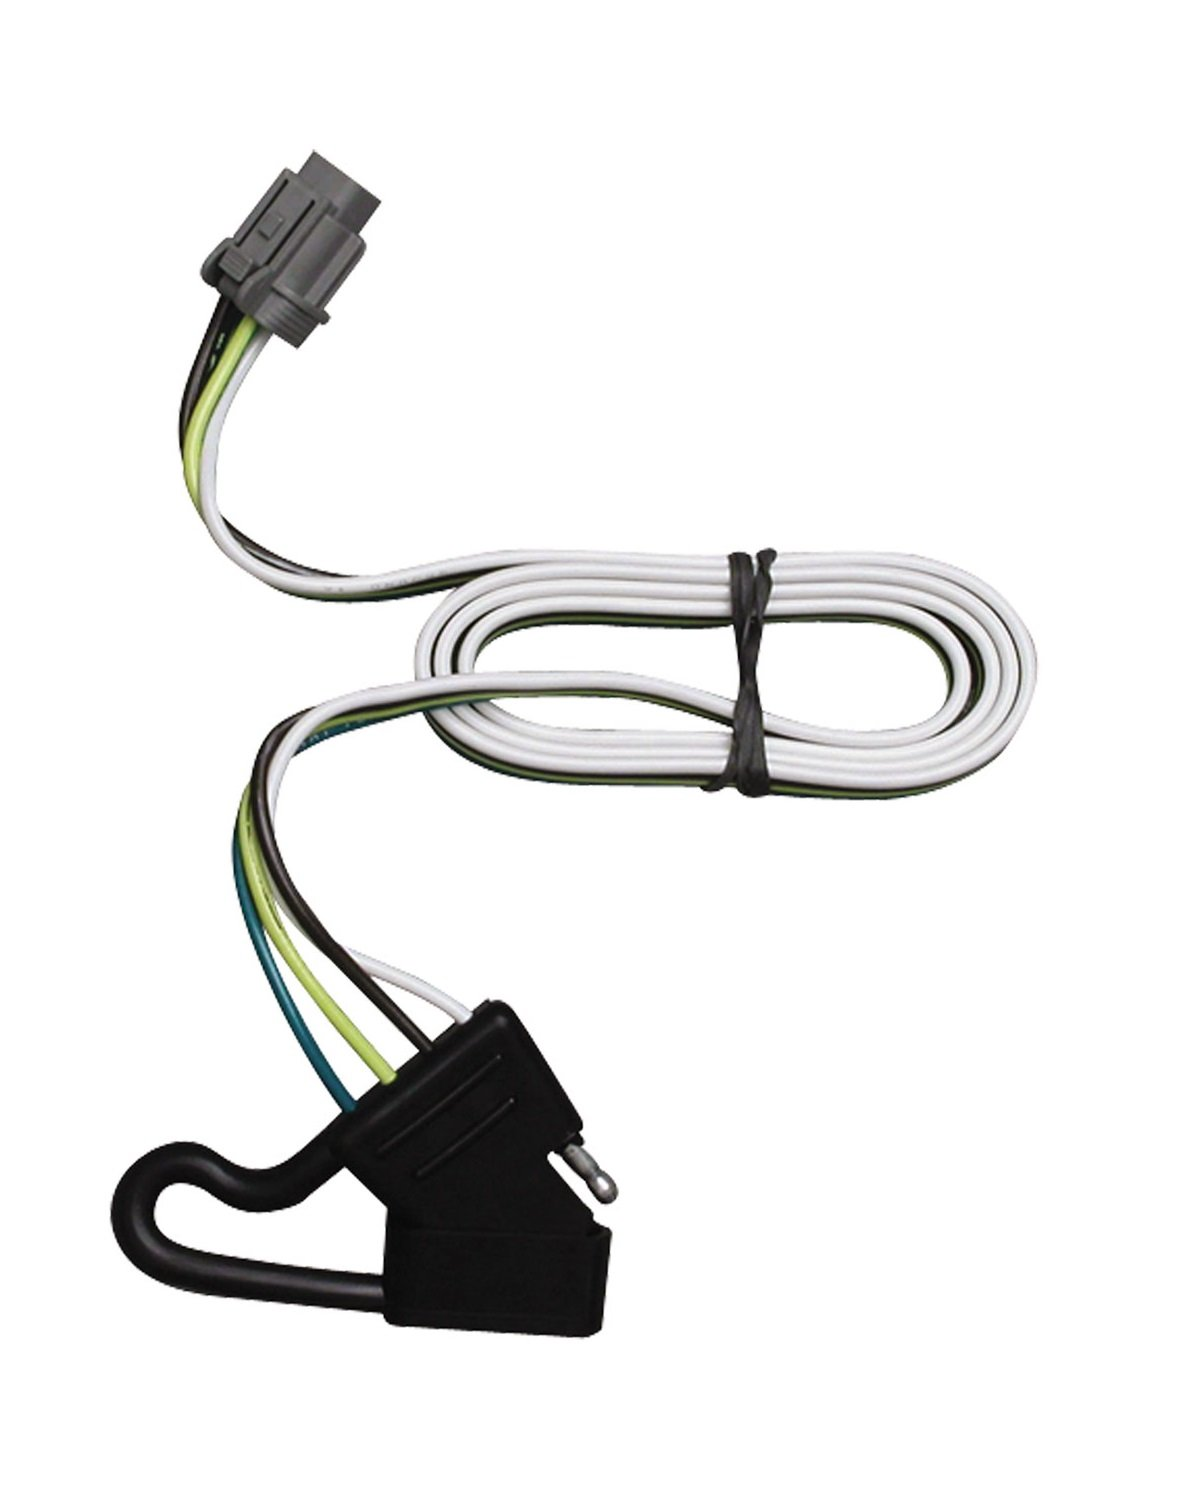 Amazon.com: Tekonsha 118244 4-Flat Tow Harness Wiring Package ...